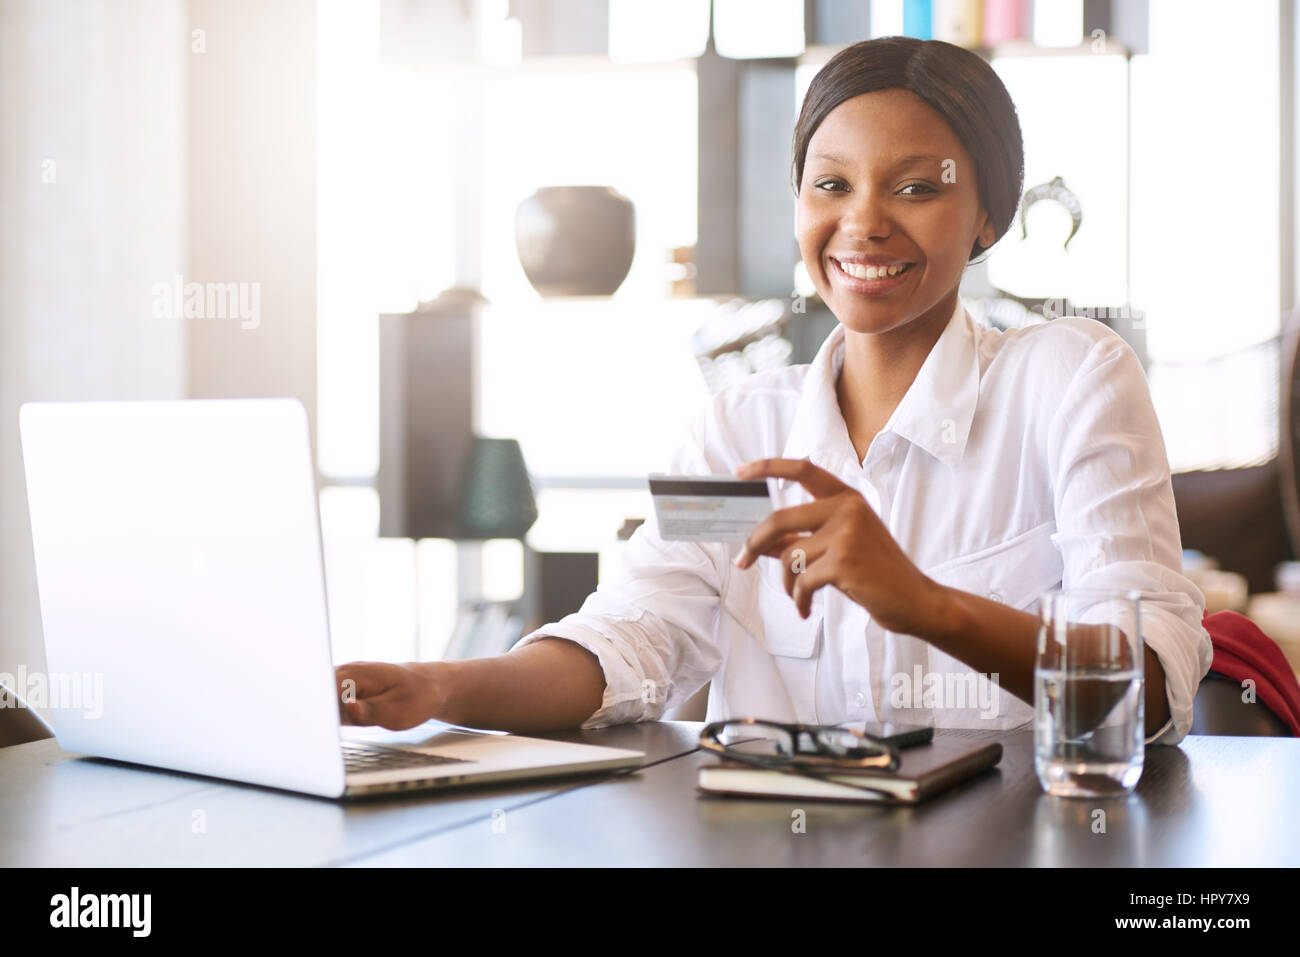 Good looking young black woman smiling at the camera while seated in front of her computer at her dining room table - Stock Image